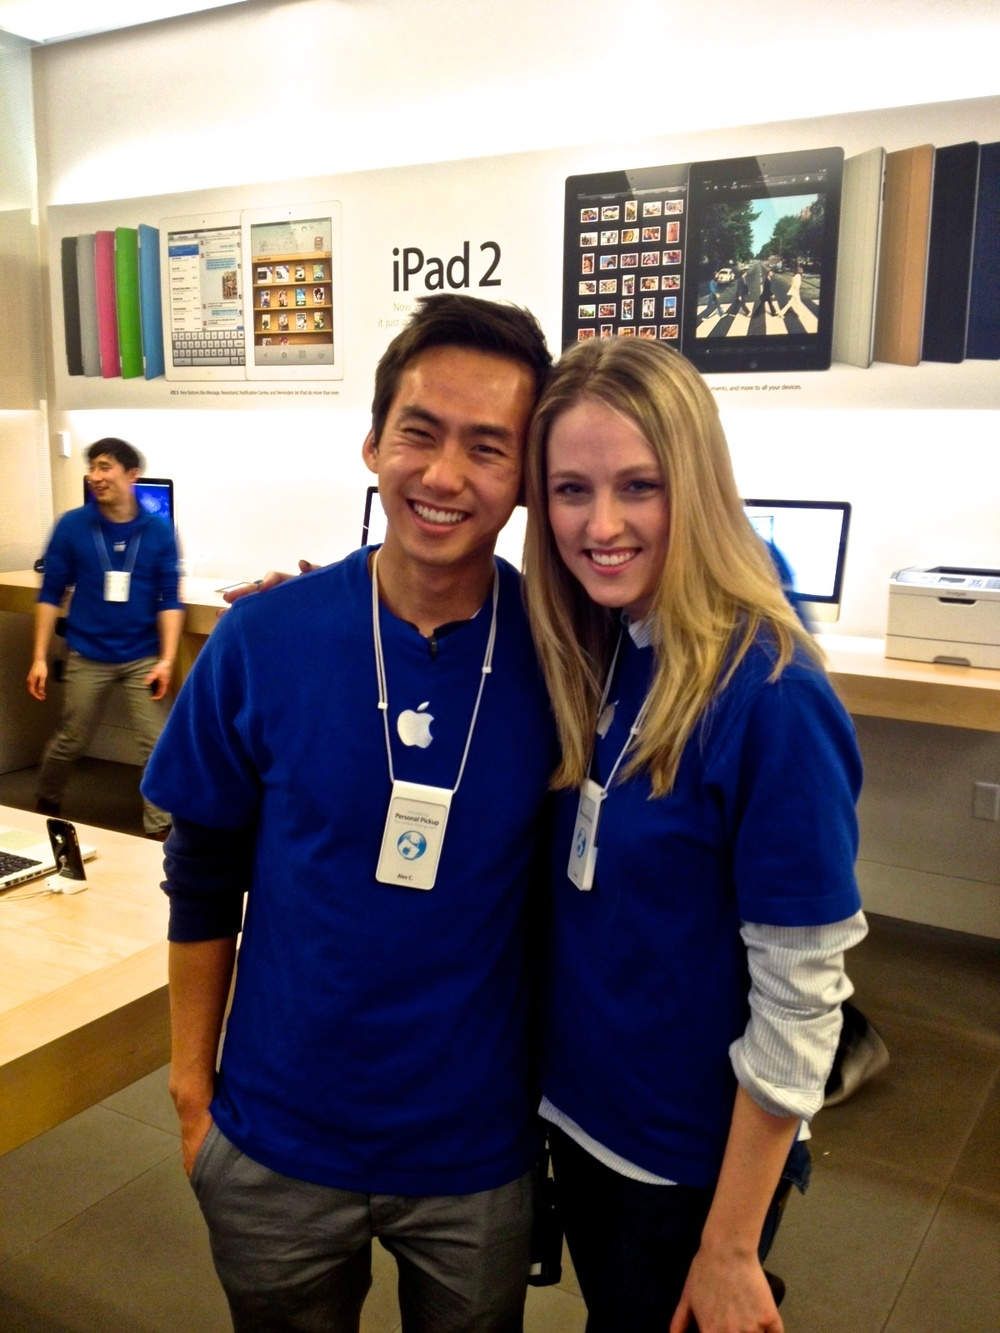 I worked with Carly (@carlymask) for over 18 months. This is us on her last day at Stonestown. (And that's Jeff Wang behind us -- probably helping 12 Chinese mainlanders)